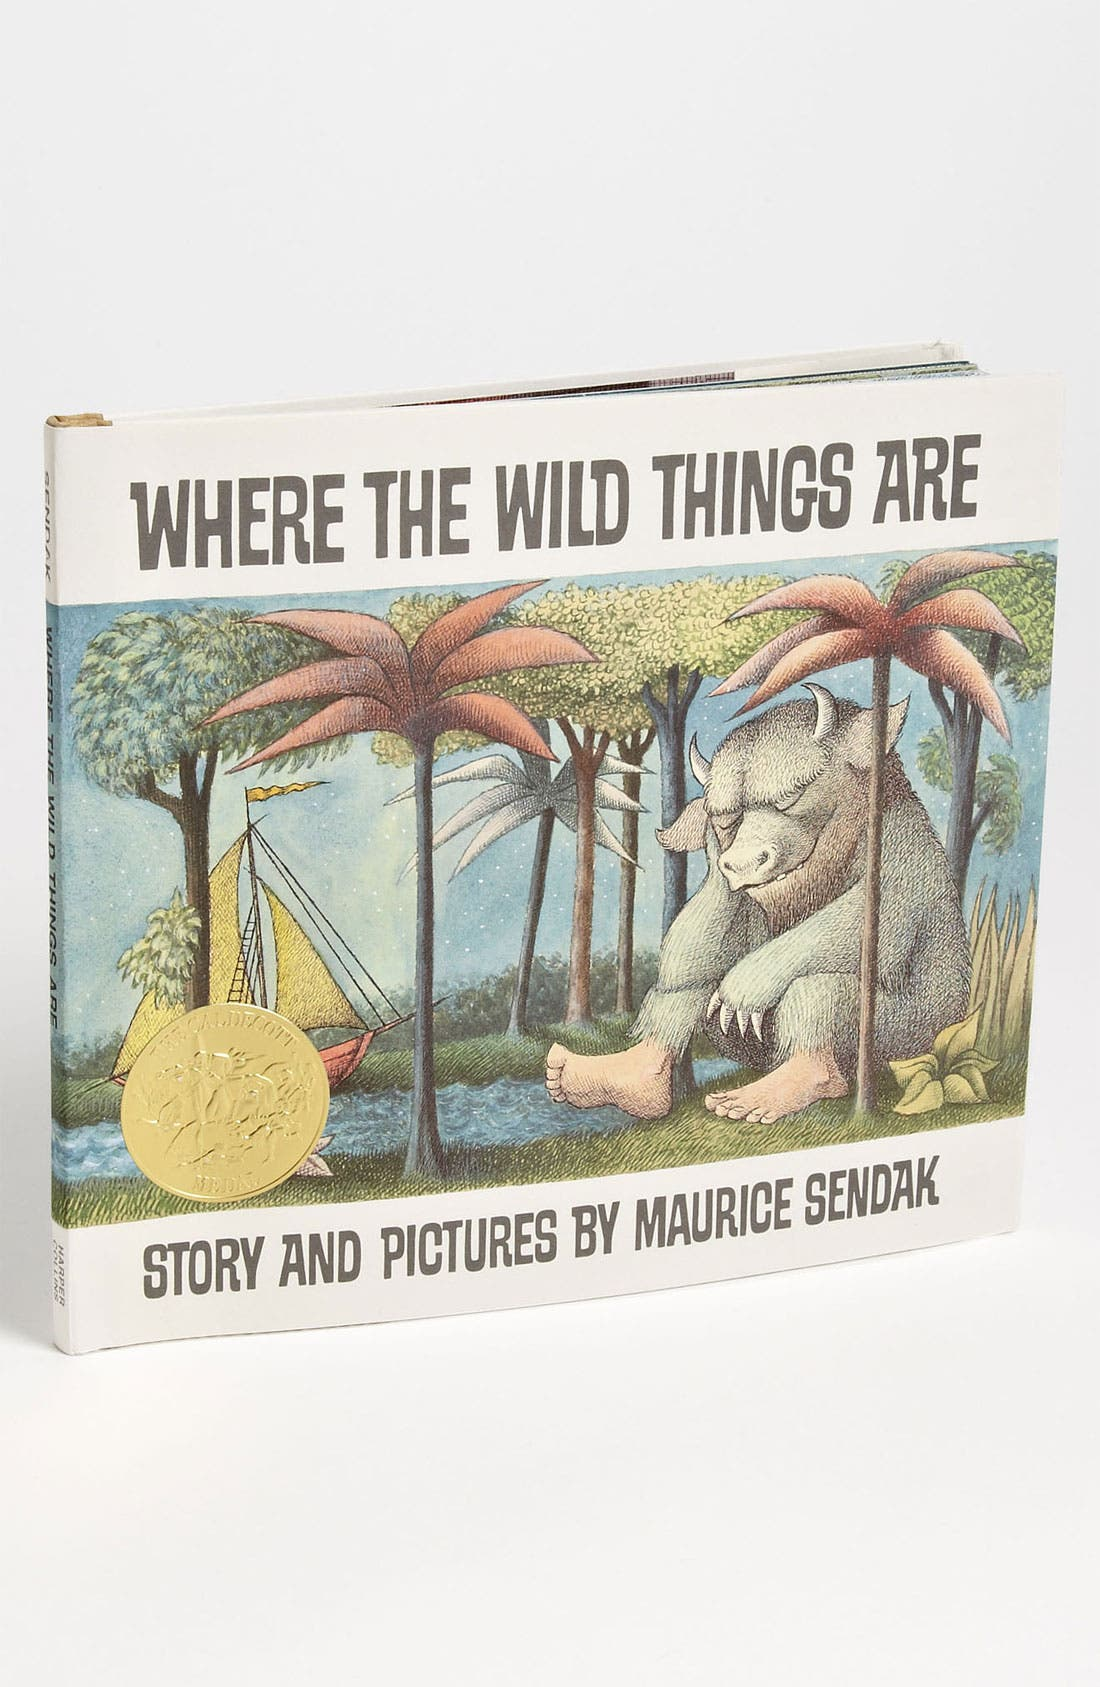 Alternate Image 1 Selected - Maurice Sendak 'Where The Wild Things Are' Book